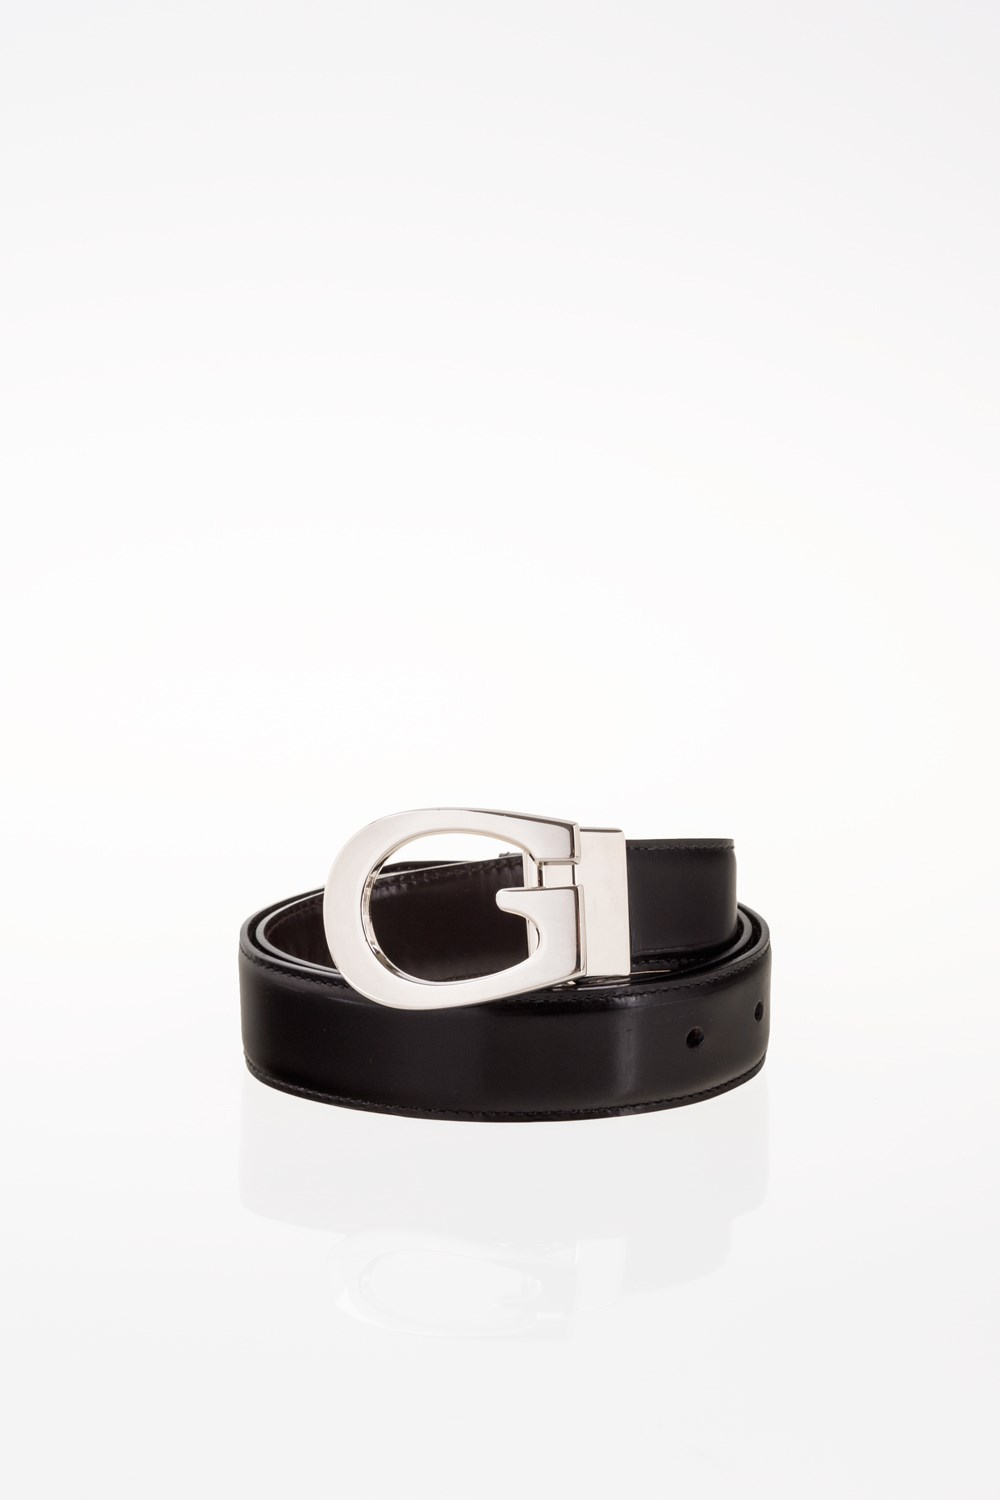 feb6e0e9702 Gucci. Black Leather Belt With G Buckle Belts Accessories Starbags